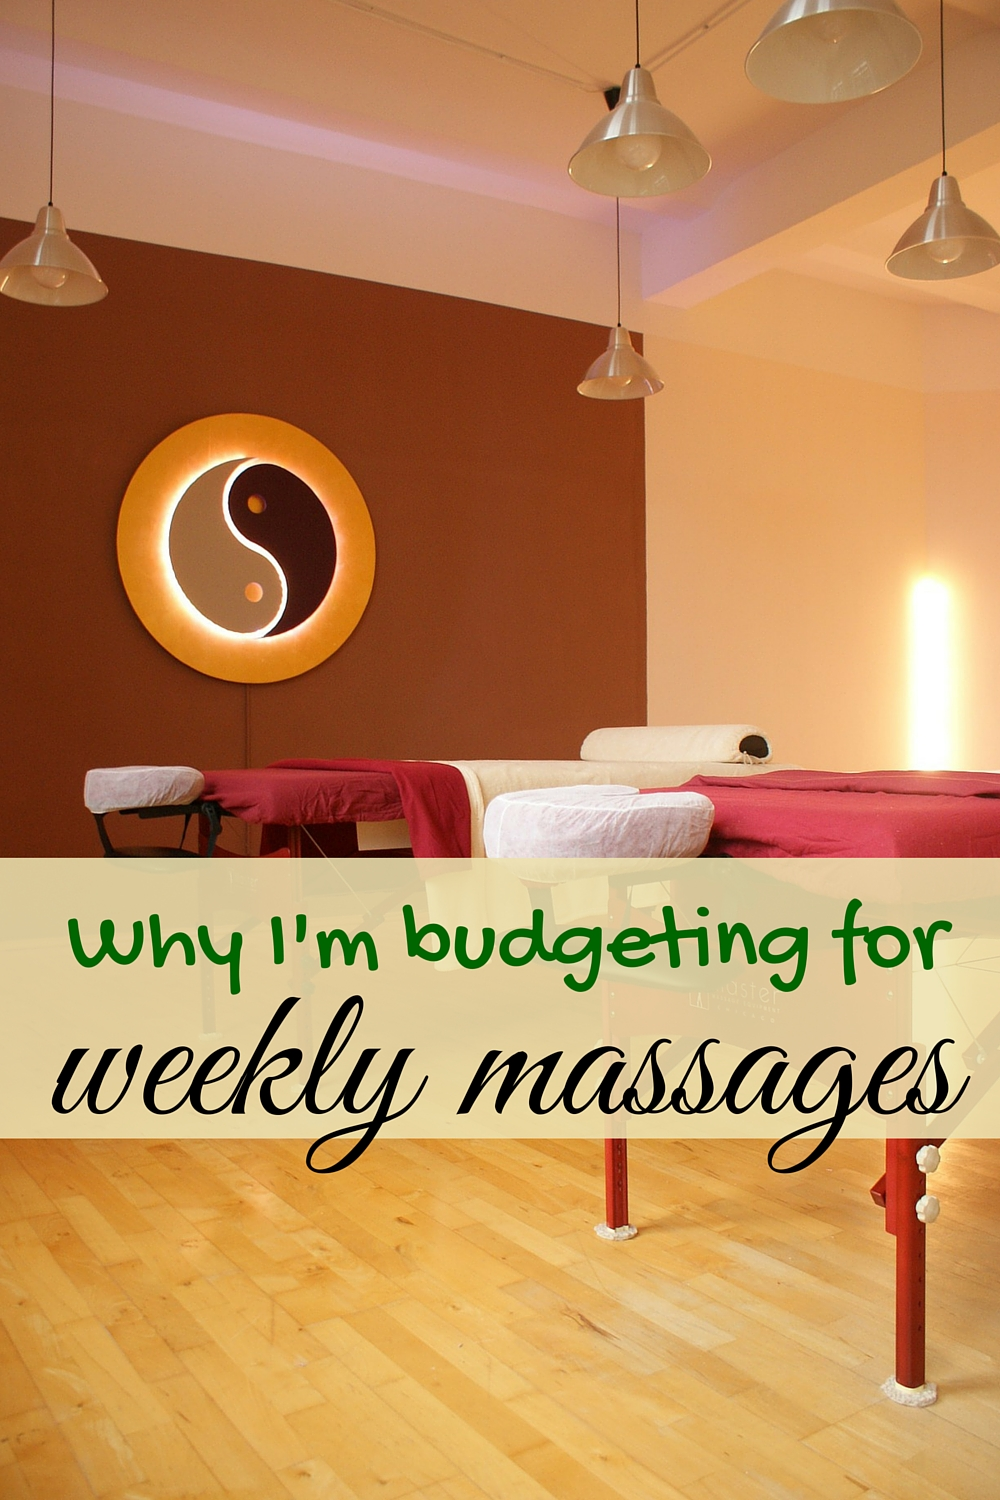 Despite being frugal, sometimes massages need to be worked into the budget. Especially if your spouse has fibromyalgia.